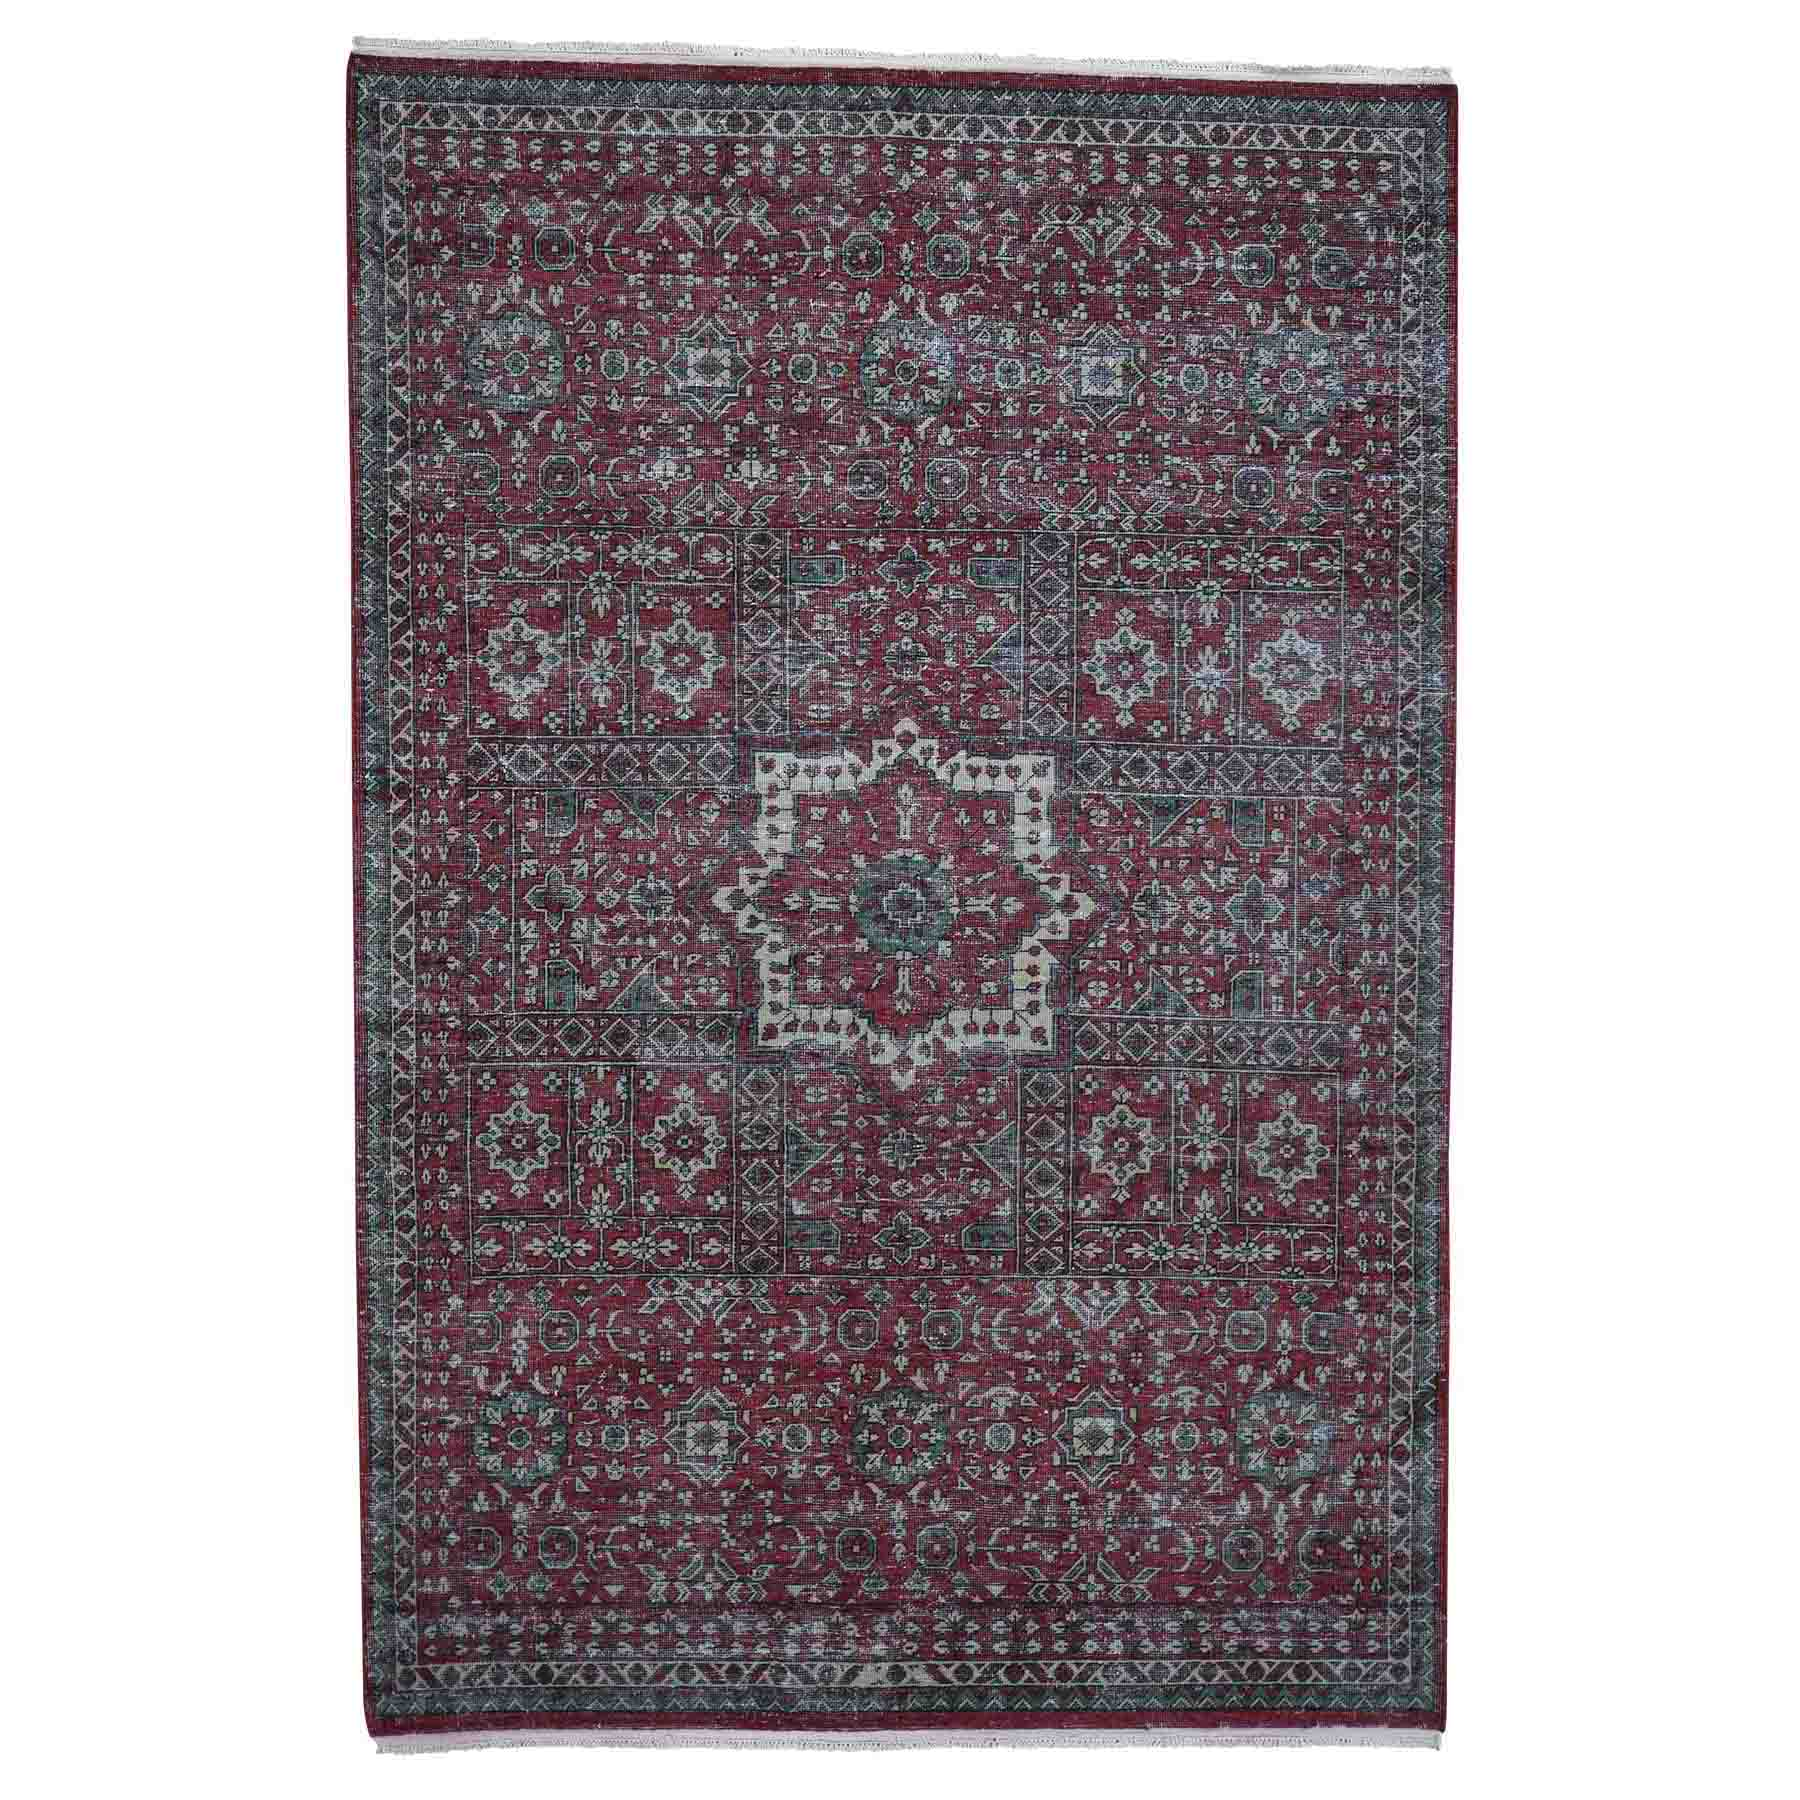 "6'1""X9' Vintage Look Mamluk Zero Pile Shaved Low Worn Wool Rug moadadc0"